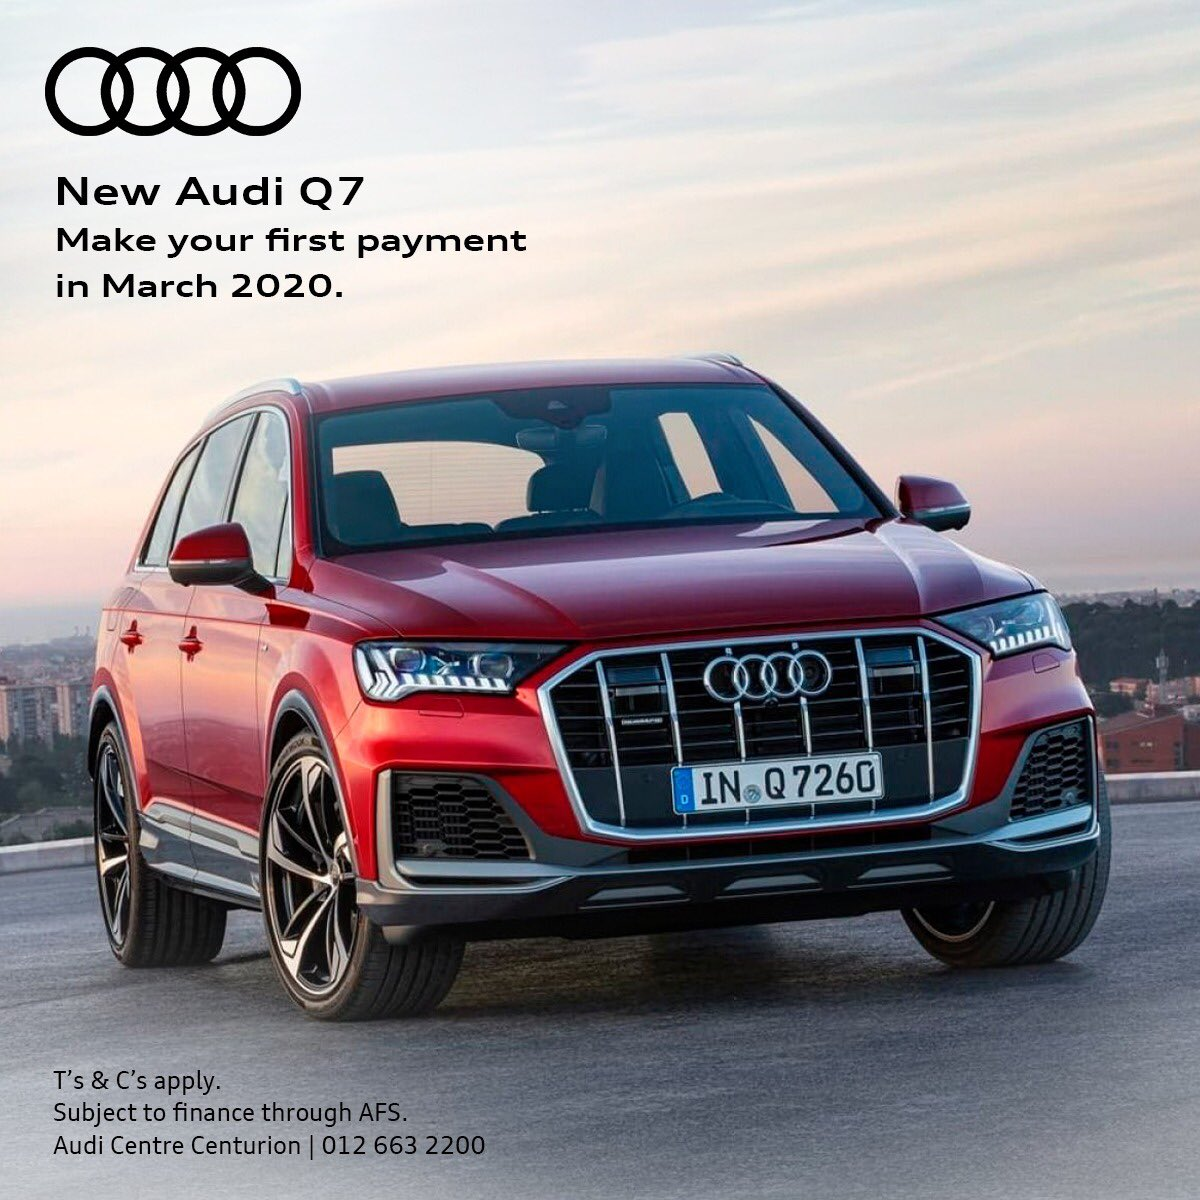 Buy your dream Audi NOW and only pay the first installment in March 2020. T&C's apply. Offer exclusive to Audi Centre Centurion. Call us today on 012 001 1687 for a quote.